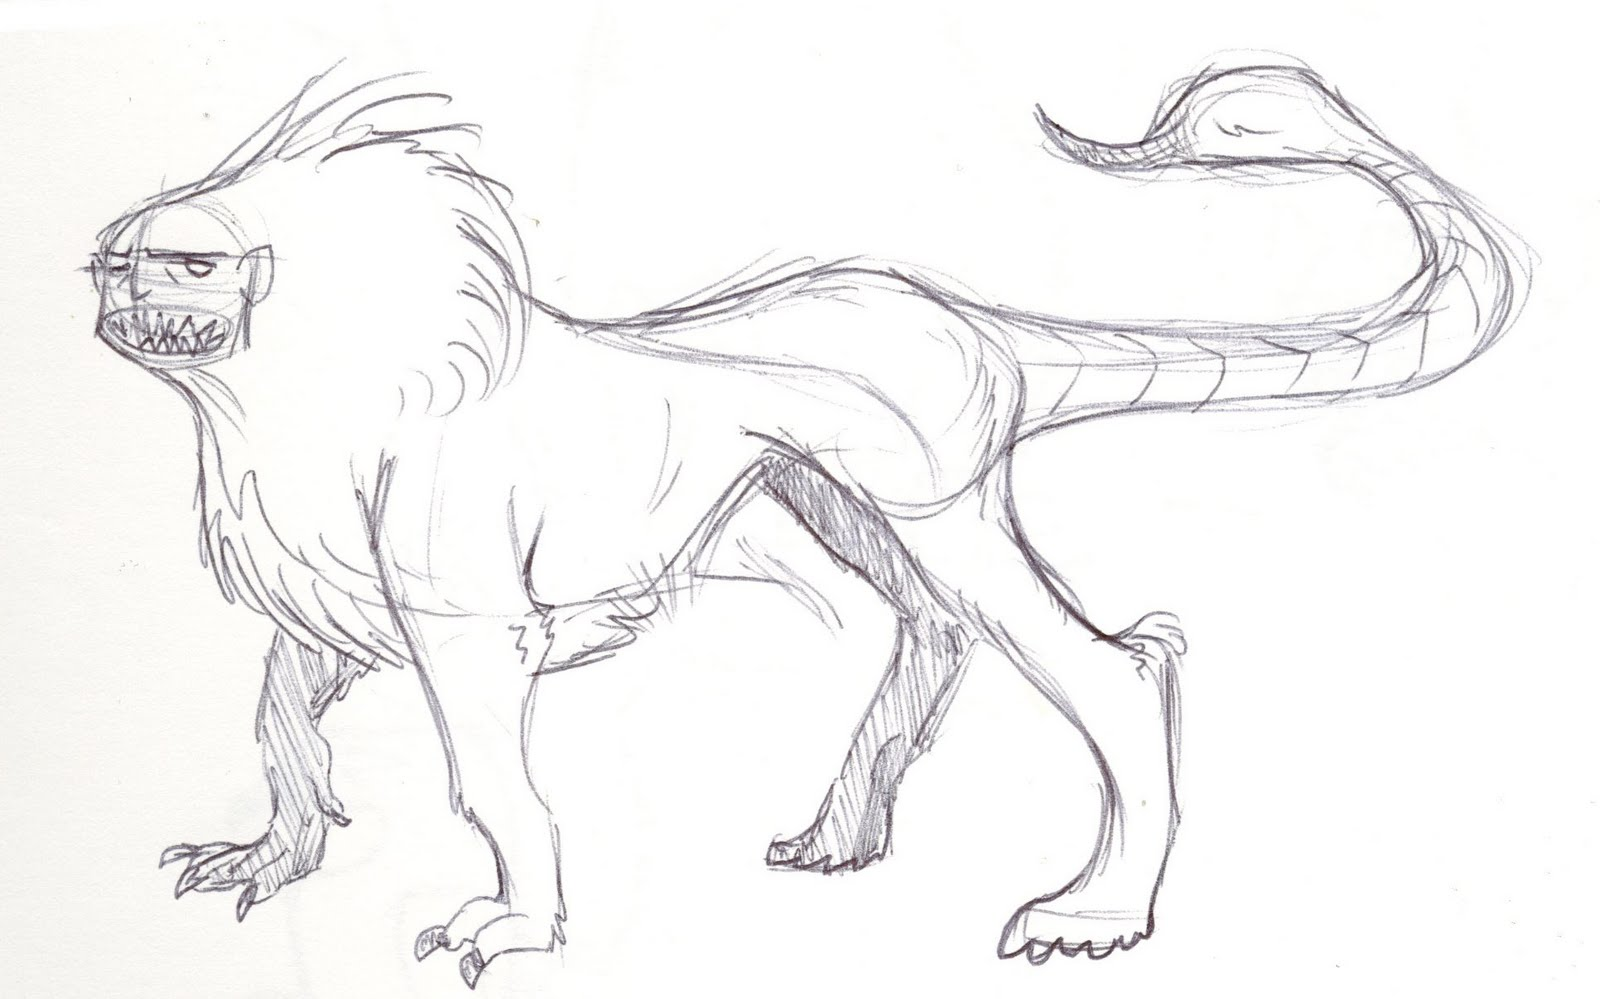 Awesome Mythical Creatures Drawings Jackie Makes Comics Some